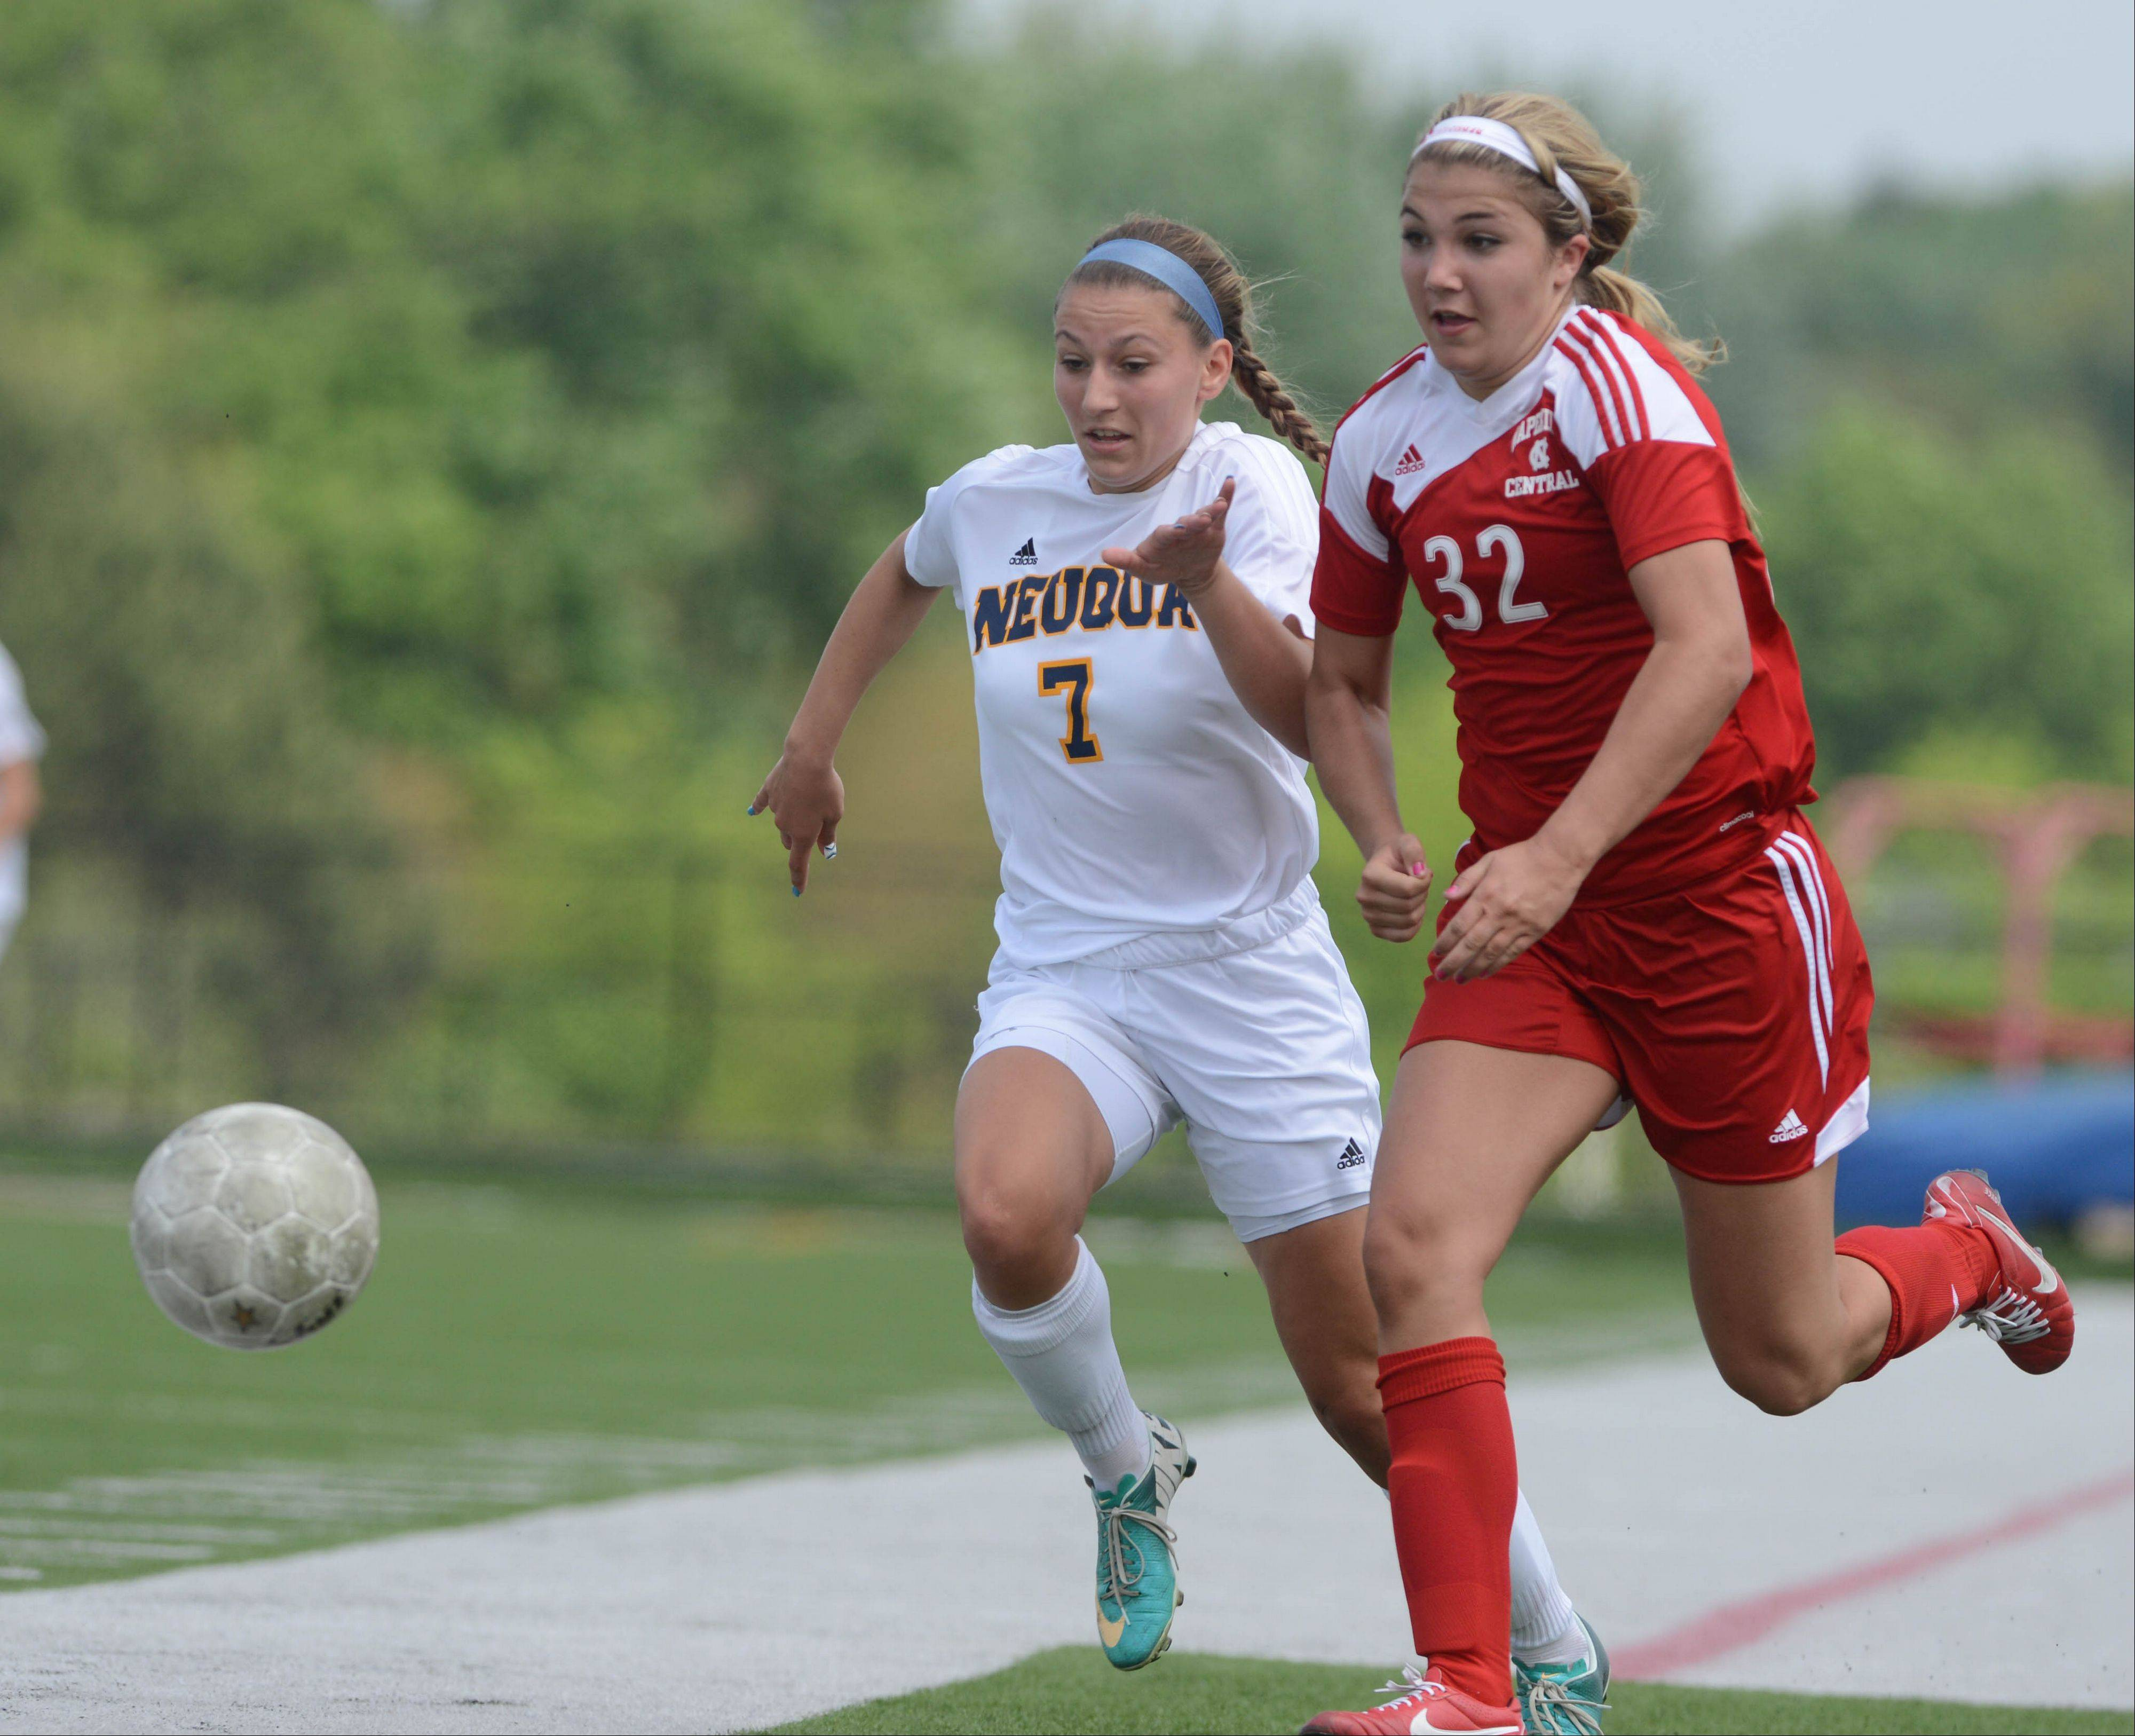 Talise Romain of Neuqua,left, and Abby Joyce of Naperville Central chase the ball during the class 3A Bolingbrook girls soccer regional final Saturday.